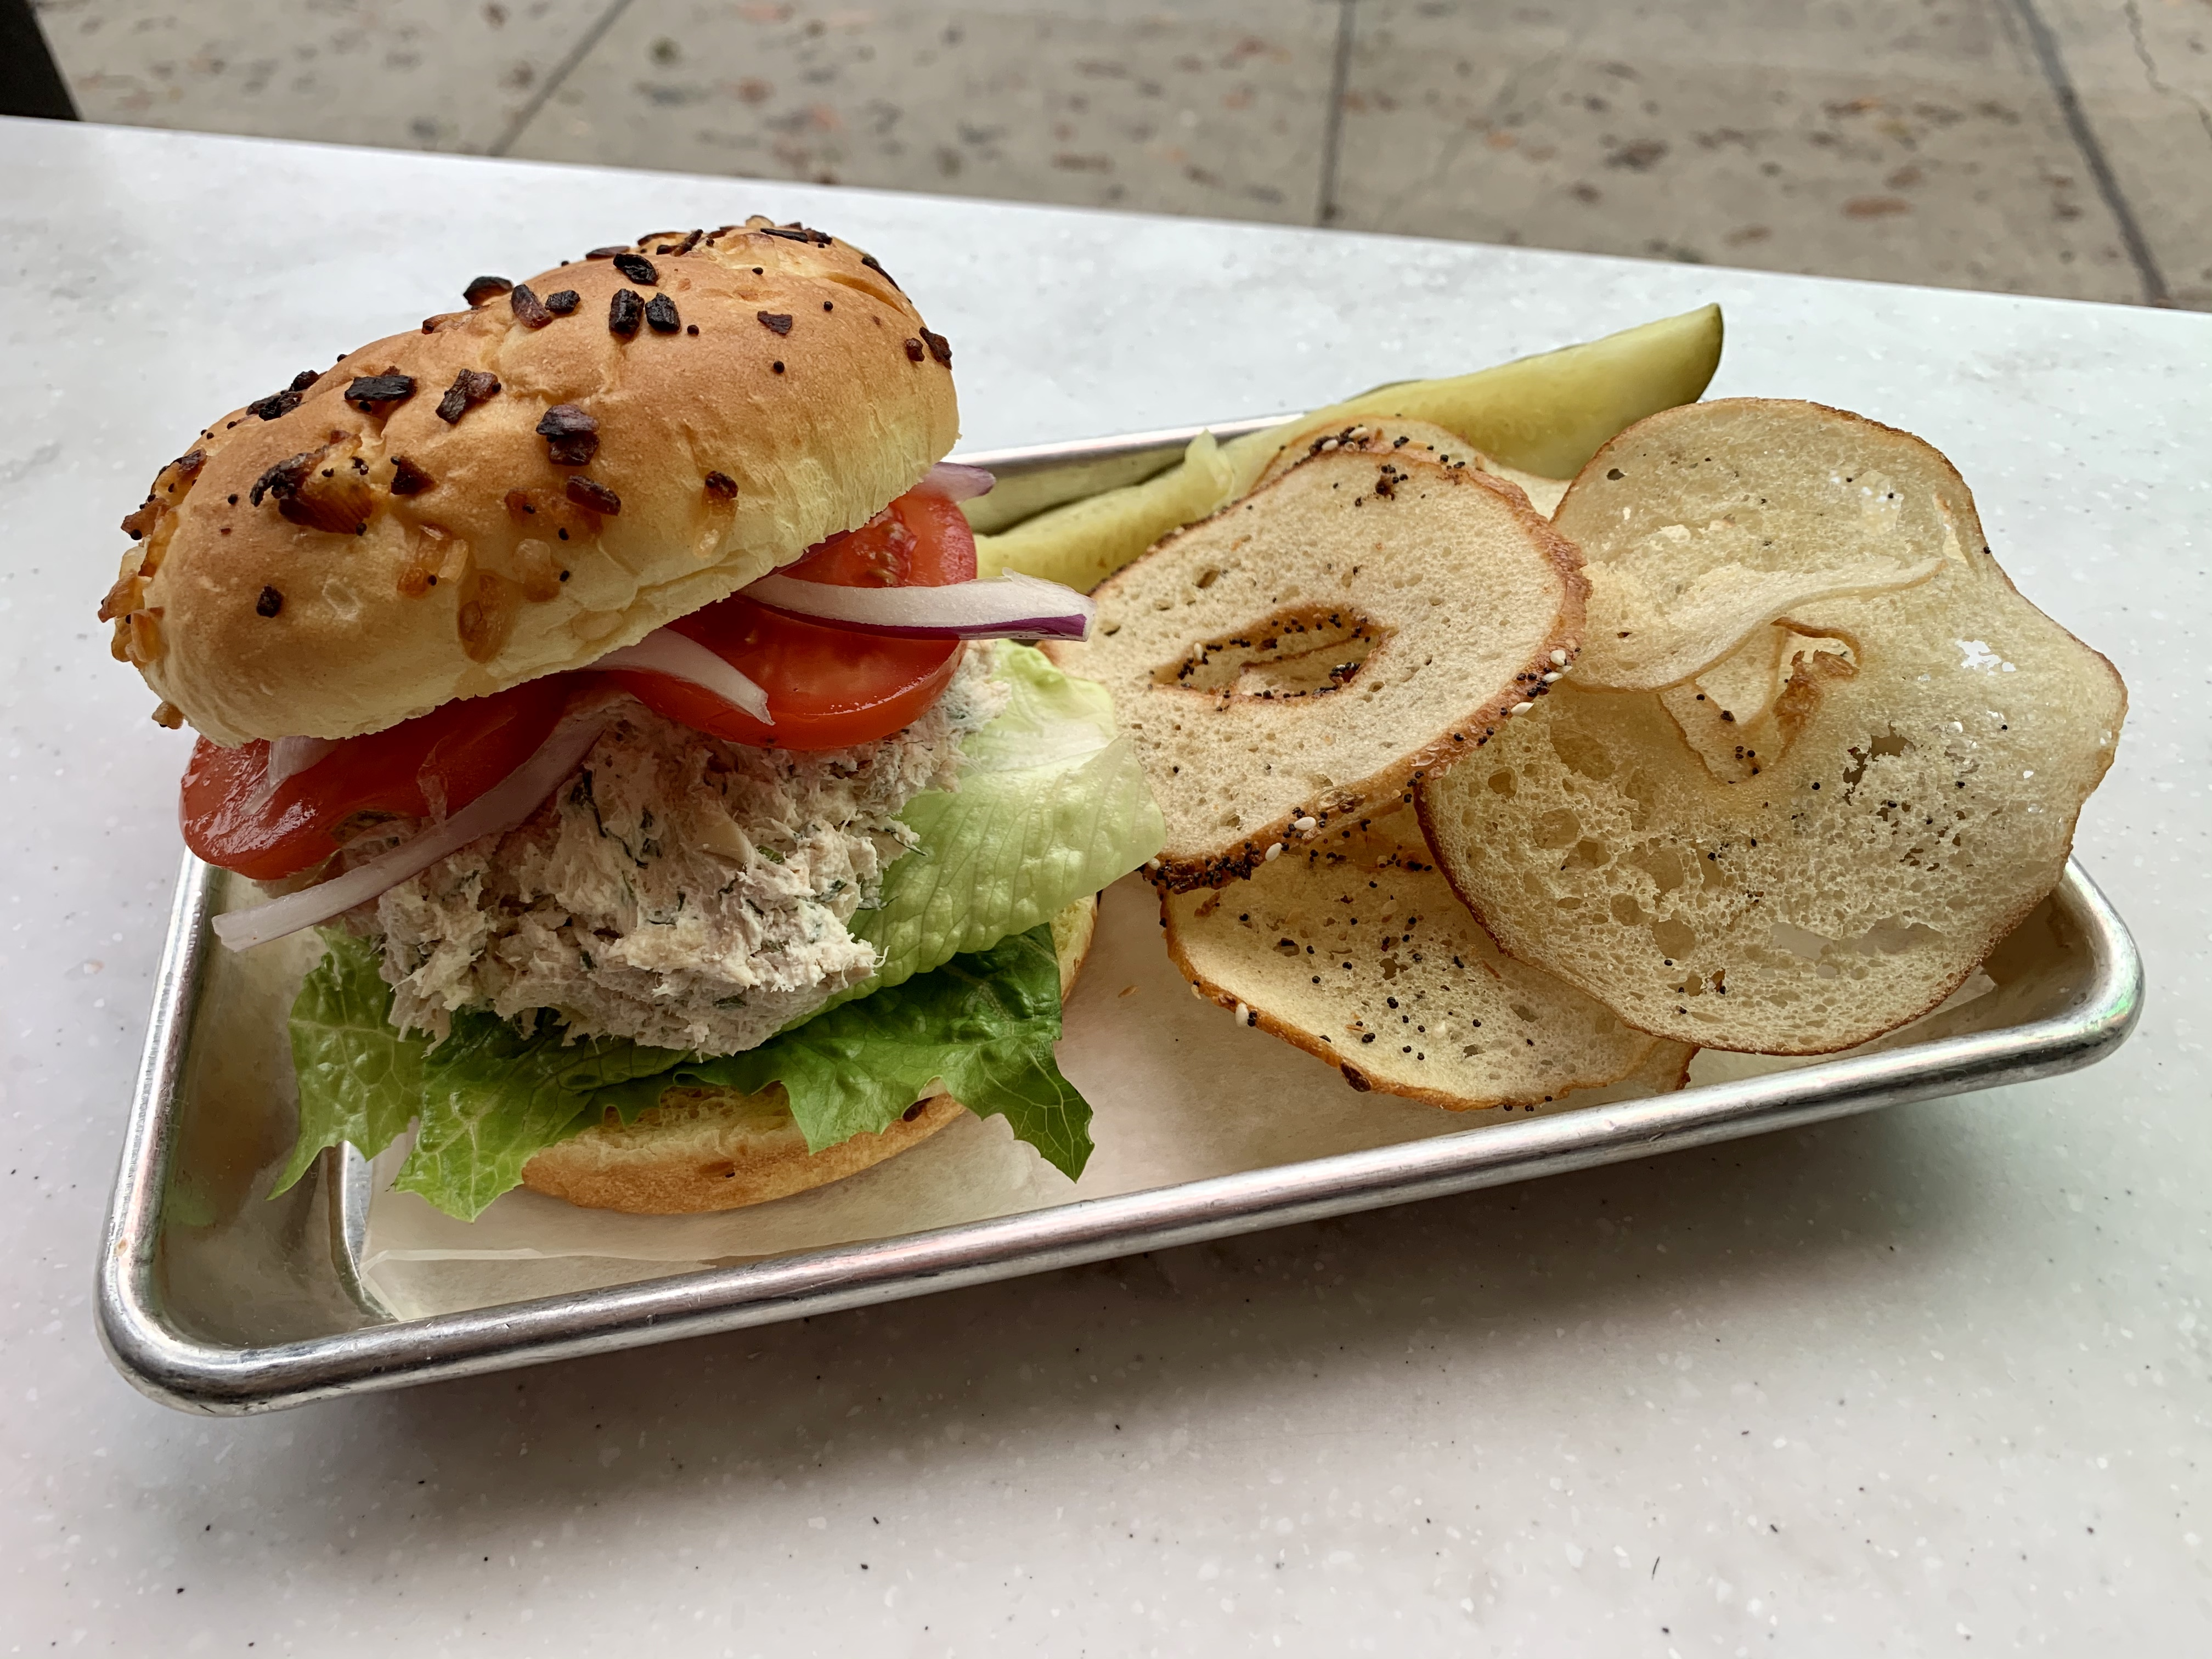 Sam & Gertie's, 'World's First' Vegan Jewish Deli, Debuts With Meatless Chopped Liver